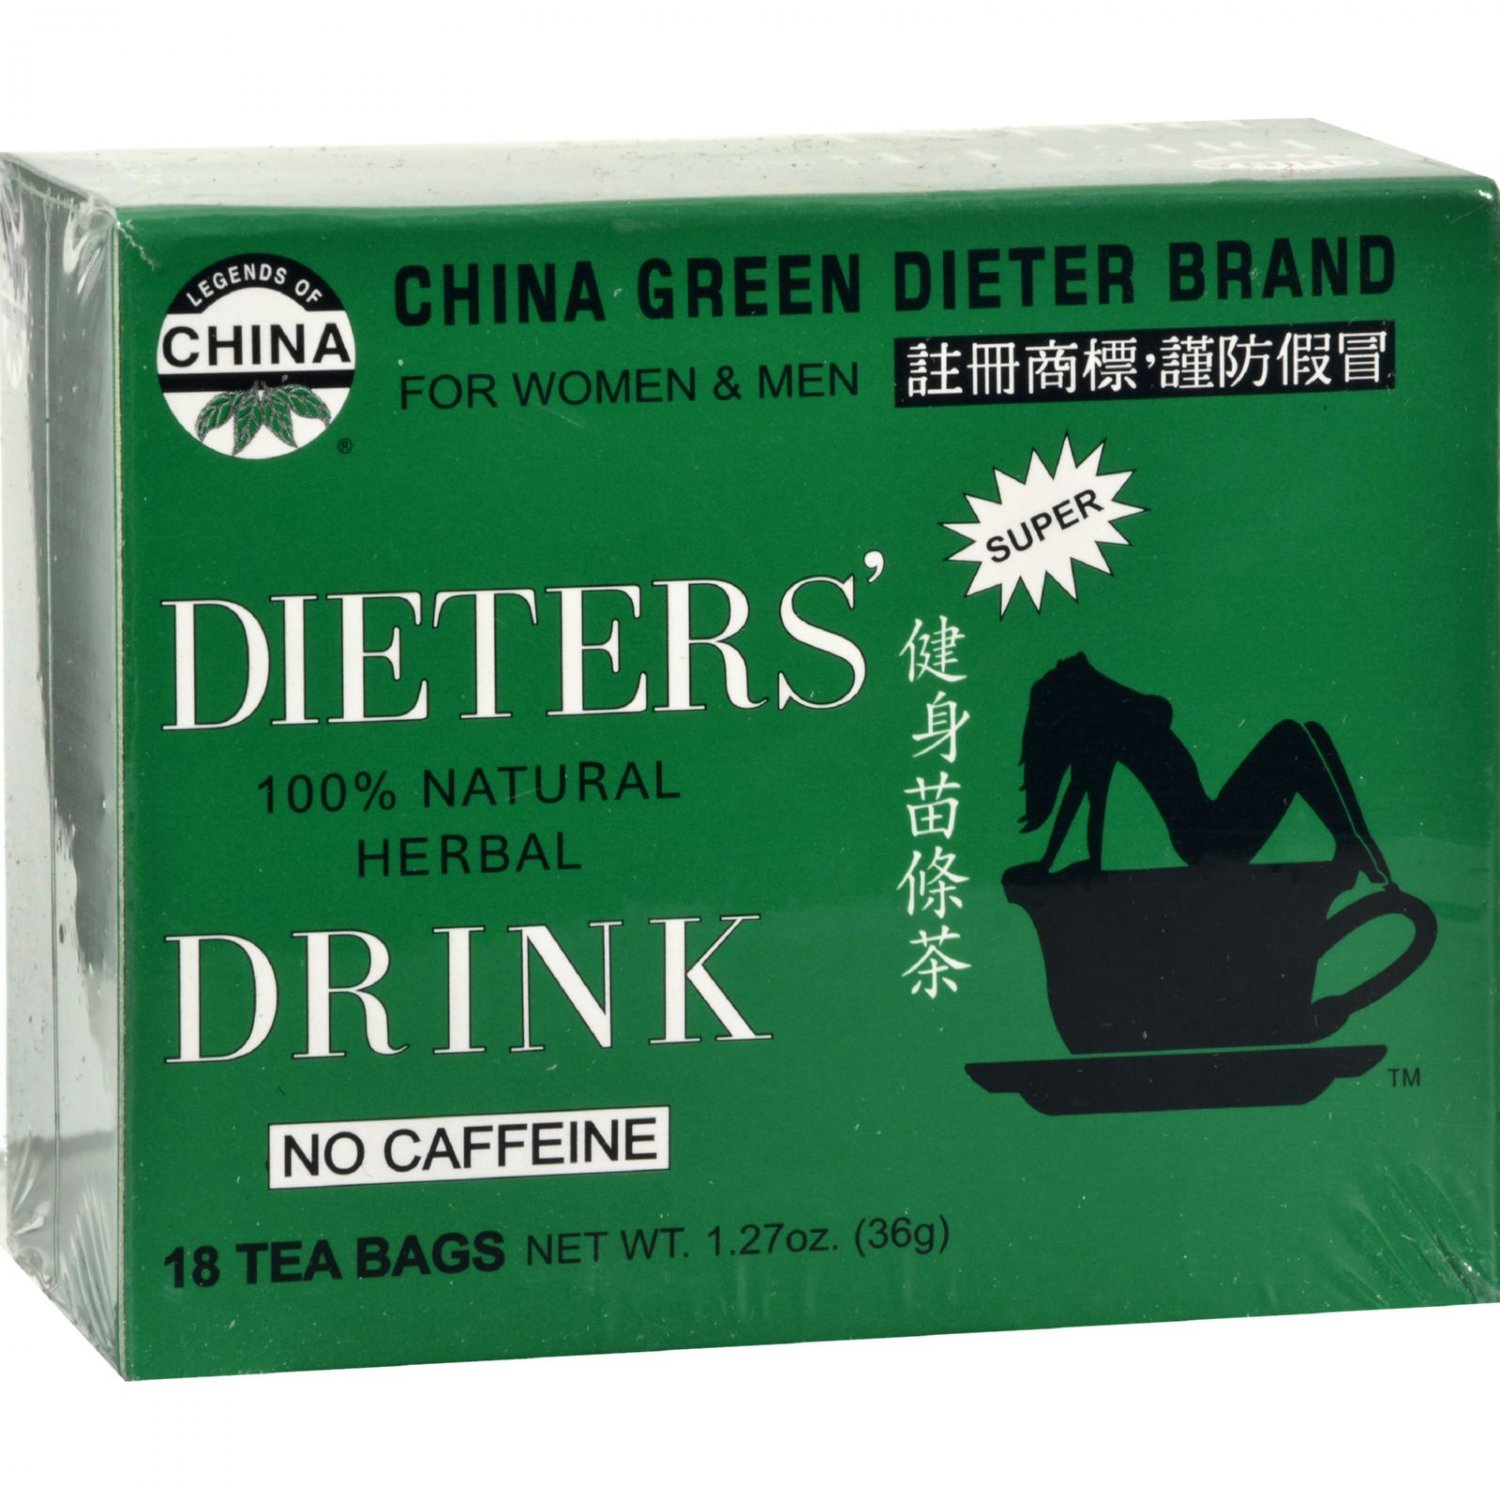 Uncle Lee's China Green Dieters Tea Dieter's Drink - 18 Tea Bags